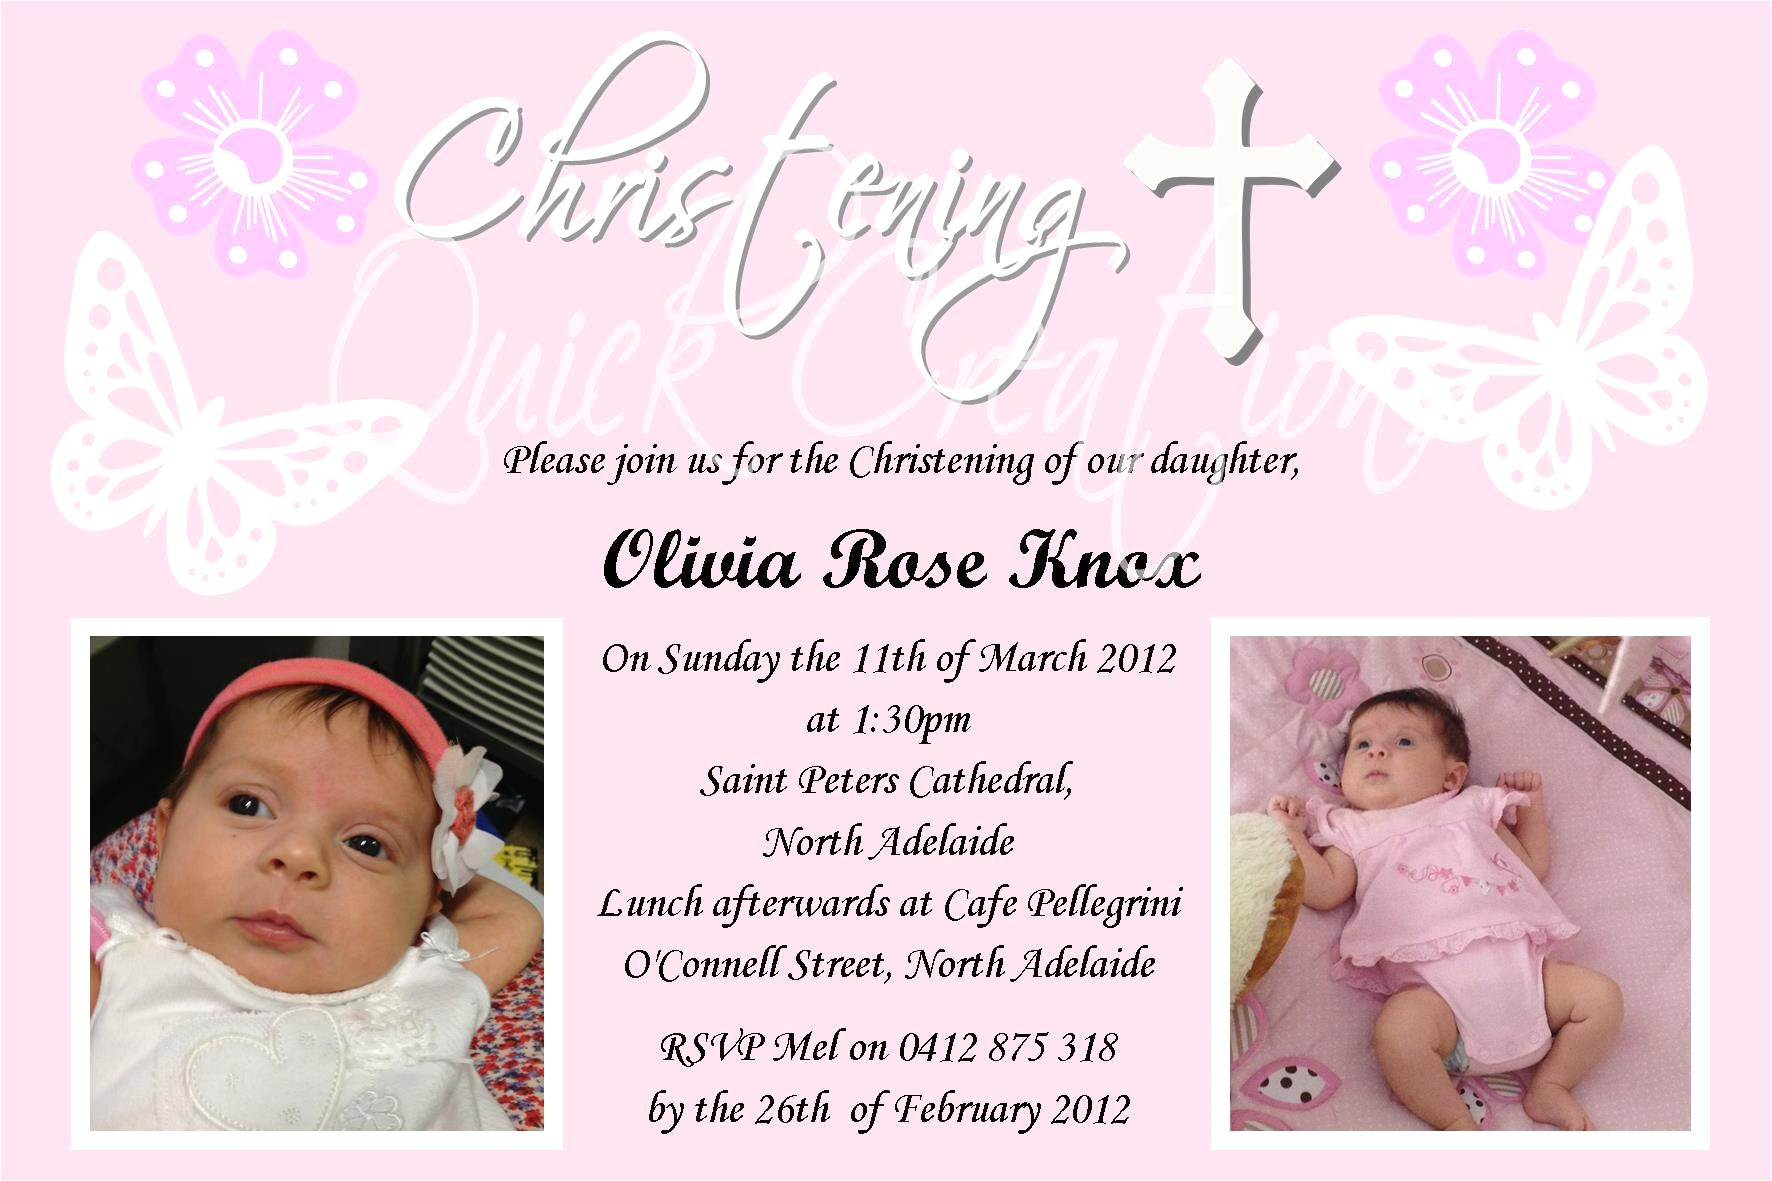 melissas daughters christening invitation example2